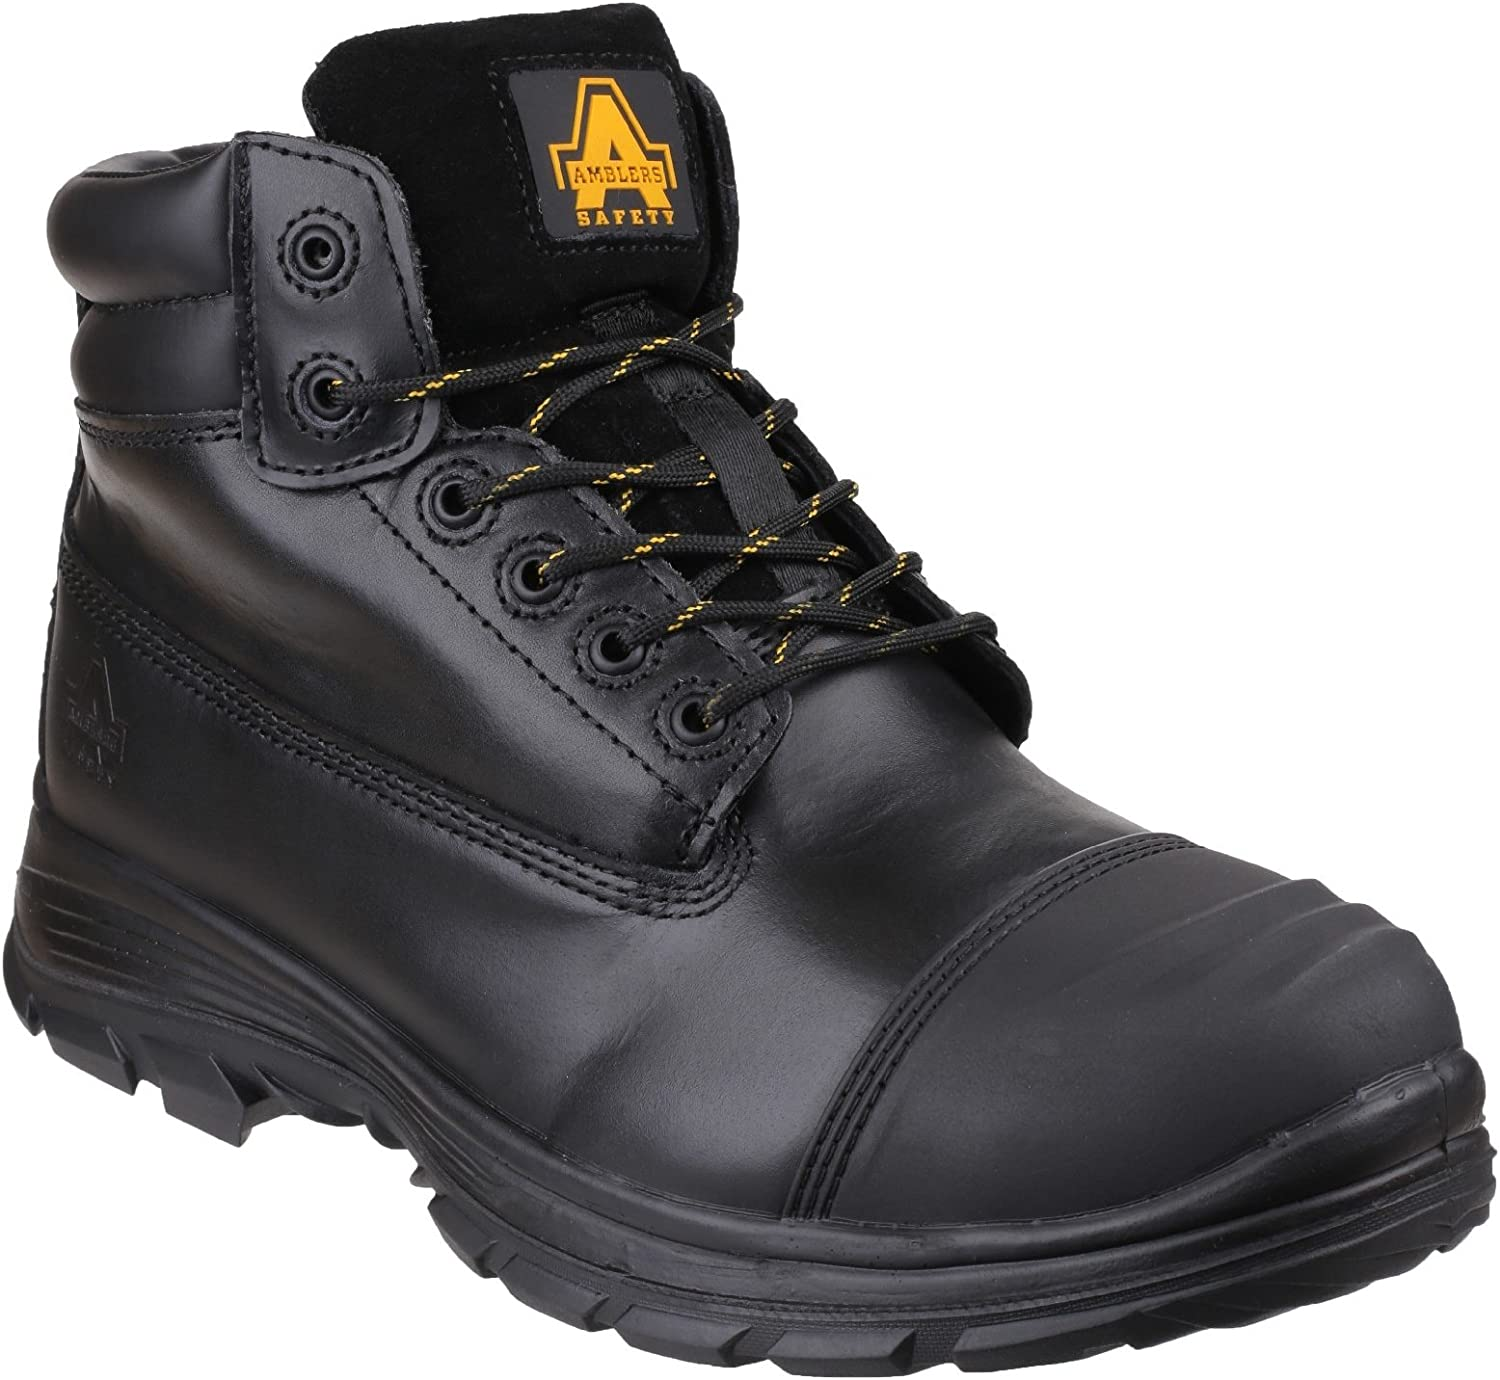 Amblers Safety Mens FS301 Brecon Water Resistant Metatarsal Guard Lace Up Safety Boot Black Size UK 10 EU 44